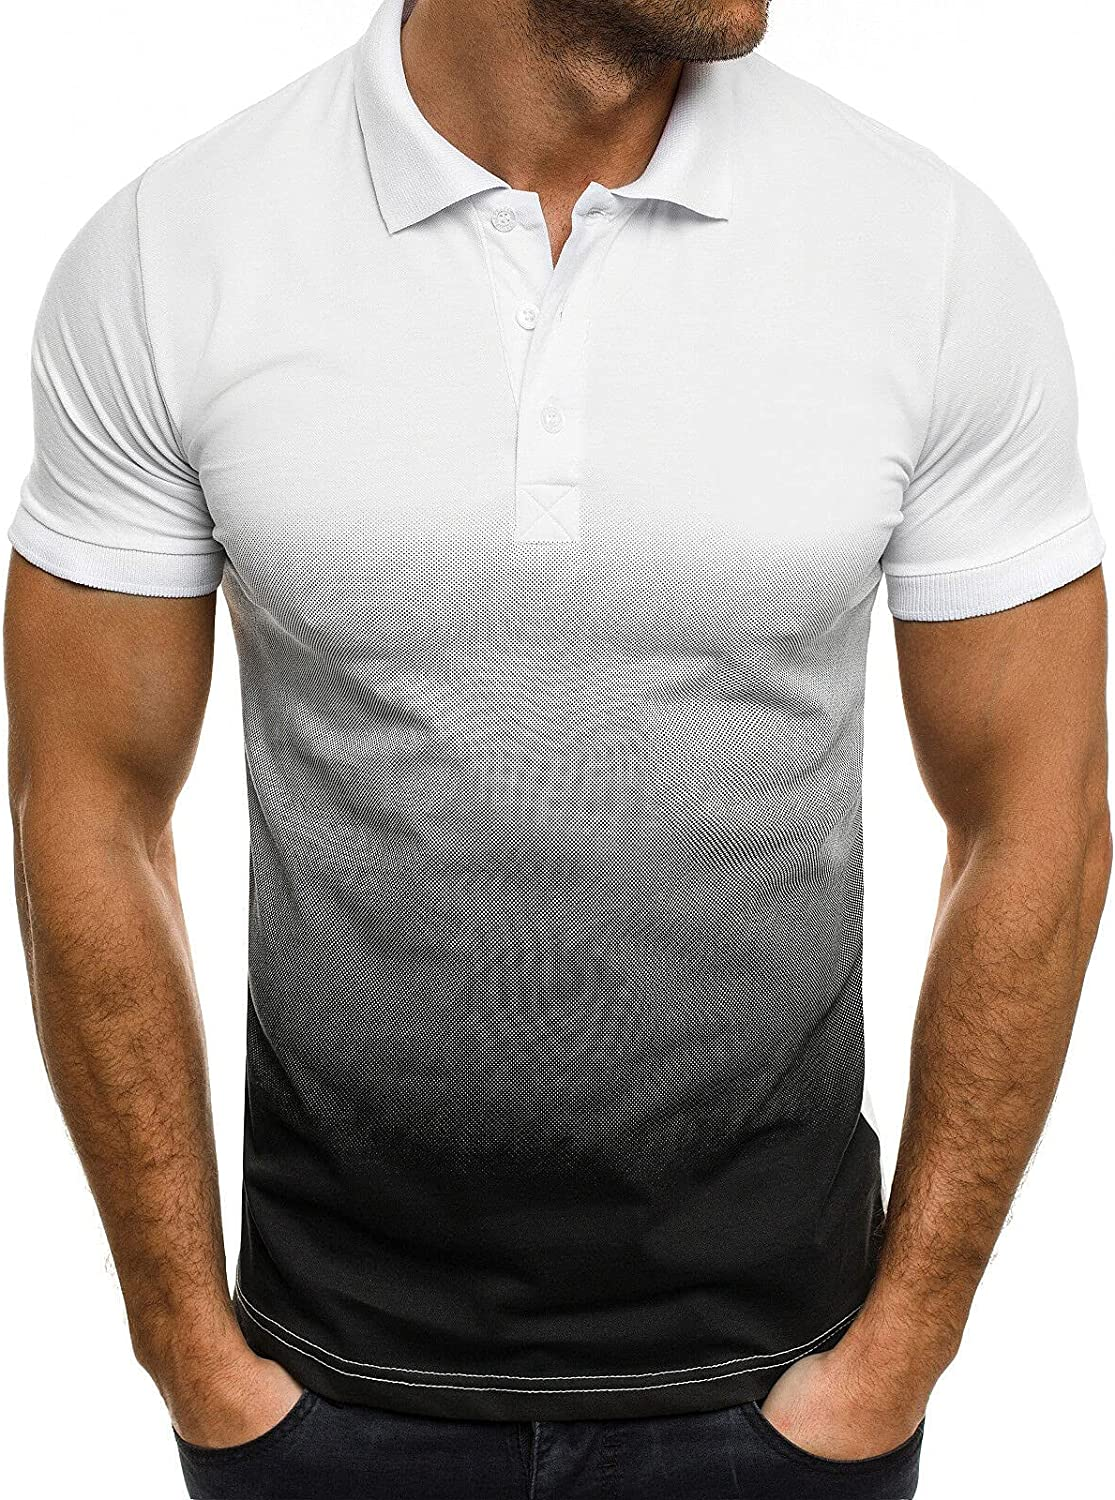 Men's Polo Shirts Casual Short Sleeve T-Shirts 3D Gradient Slim Fit T-Shirt Bodybuilding Muscle Fitness Tee Tops